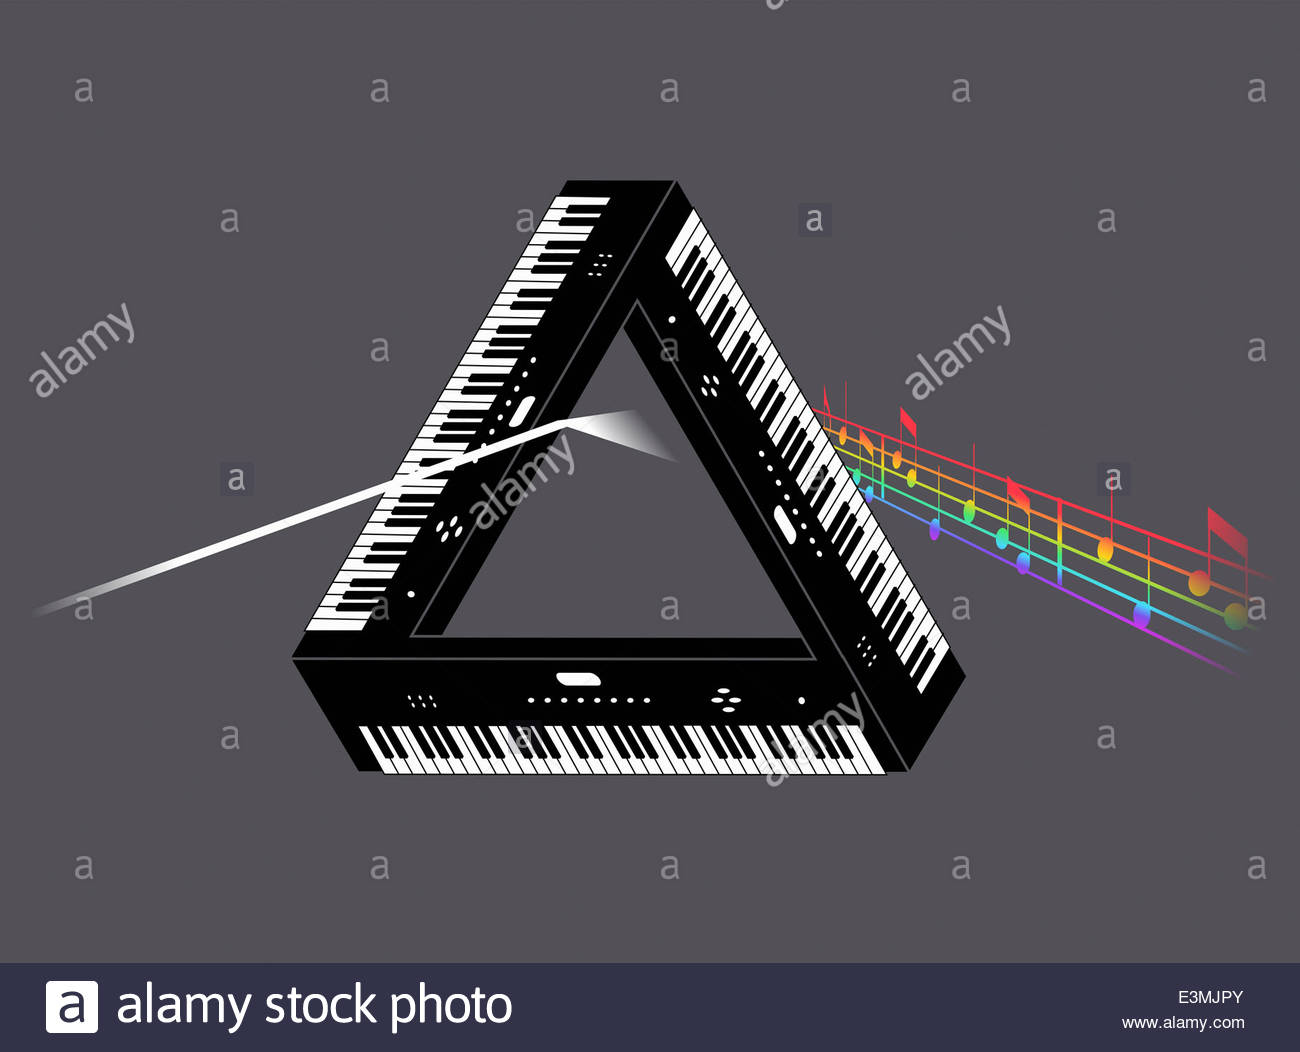 Triangle of keyboards forming prism for multicolored music notes - Stock Image